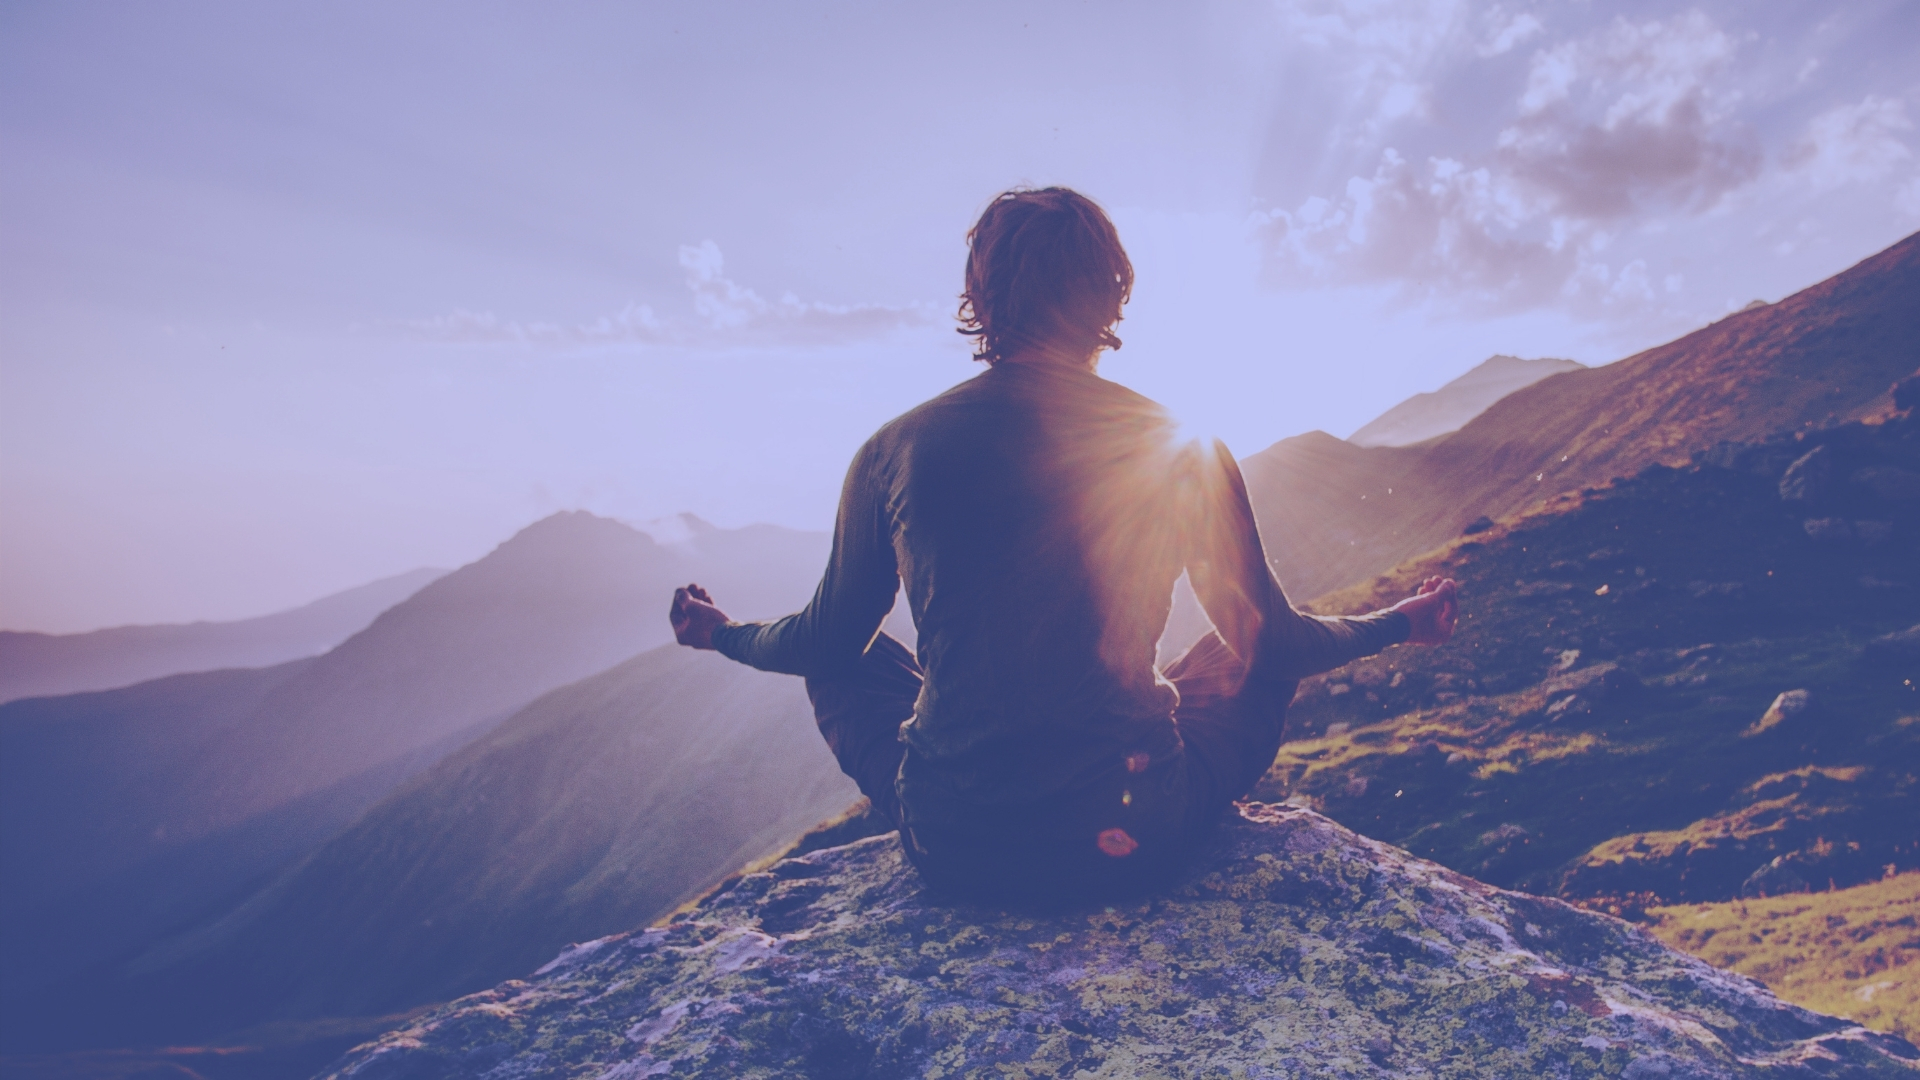 Person meditating in beautiful mountain landscape.